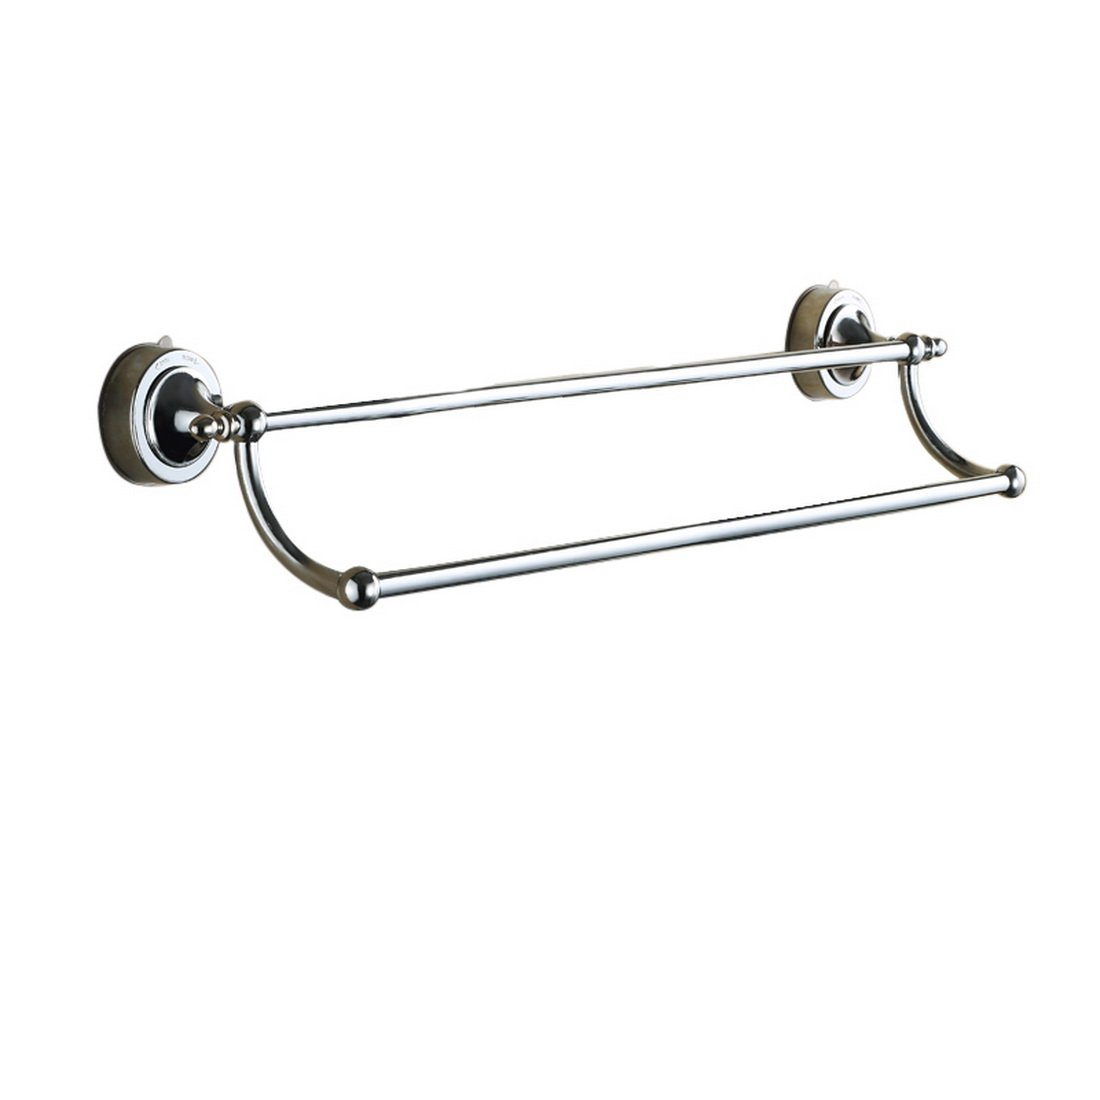 No drill bathroom accessories - Amazon Com Nibesser Suction Cup Double Towel Bar No Drill Contemporary Bathroom Accessory Clothes Organizer Shelf Rack Brushed Finish 26 Inch Home